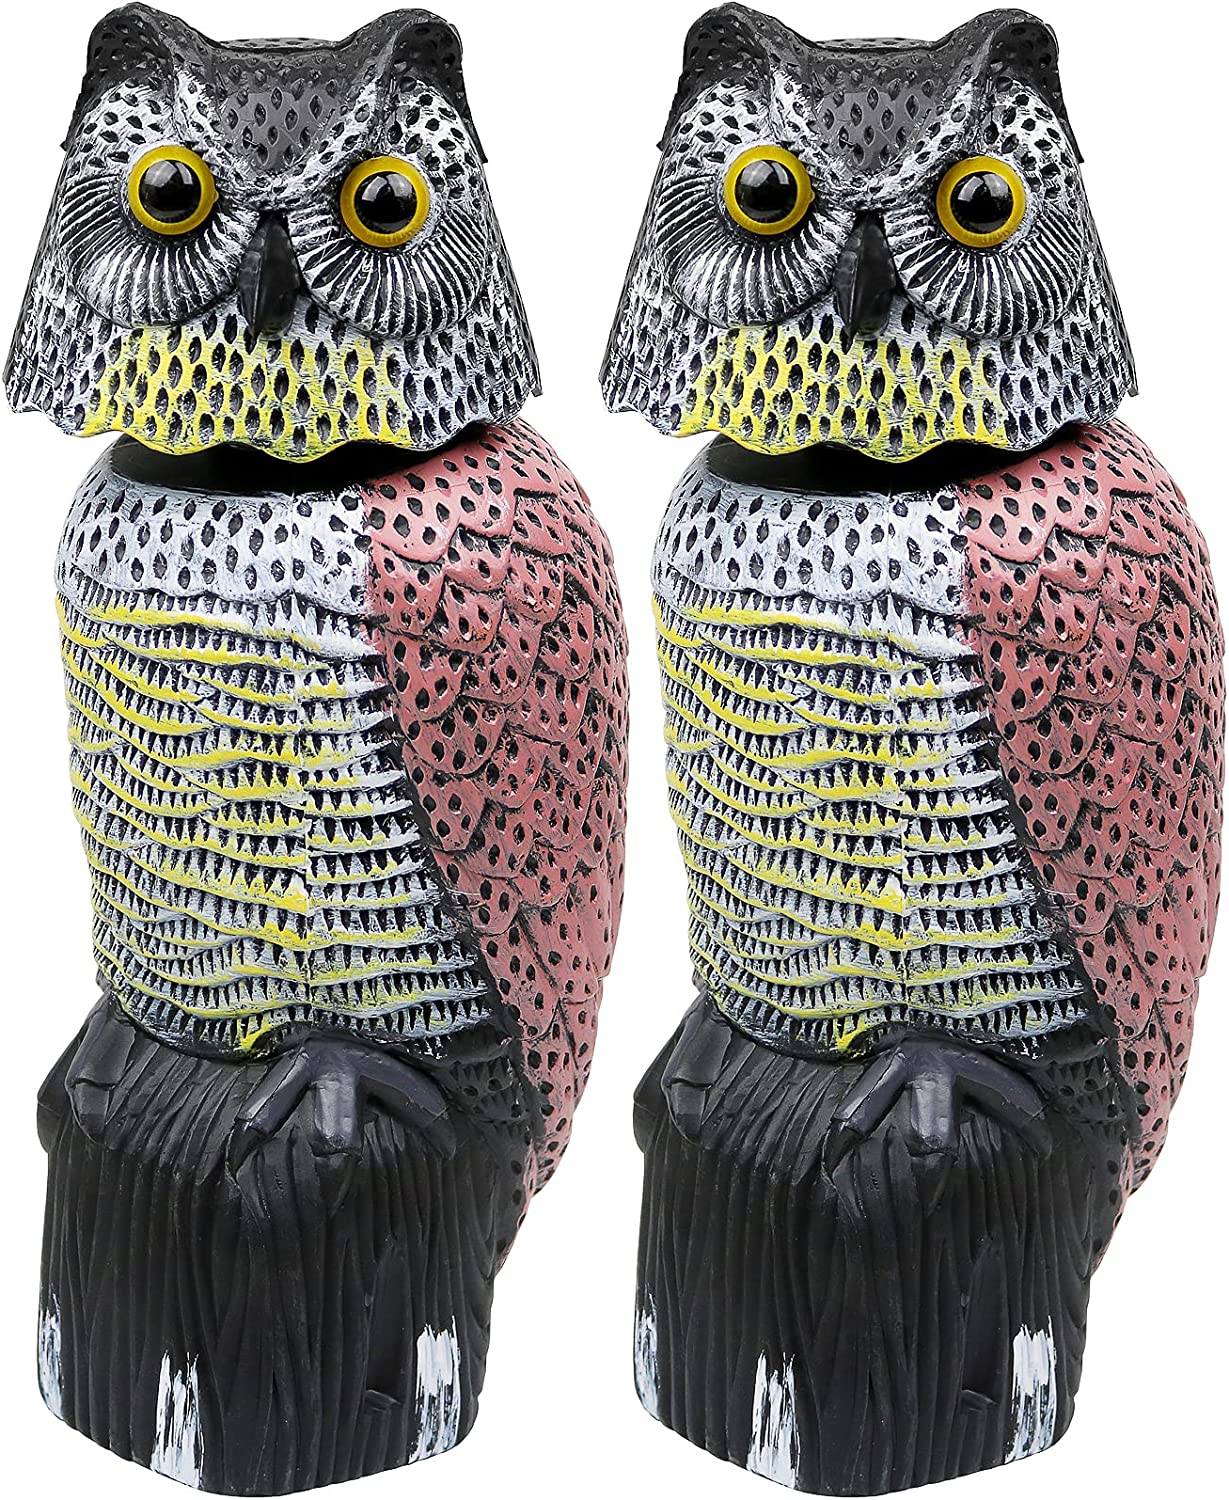 Galashield Owl Decoy to Scare Birds Away Scarecrow Fake Owl with Rotating Head (2 Pack)